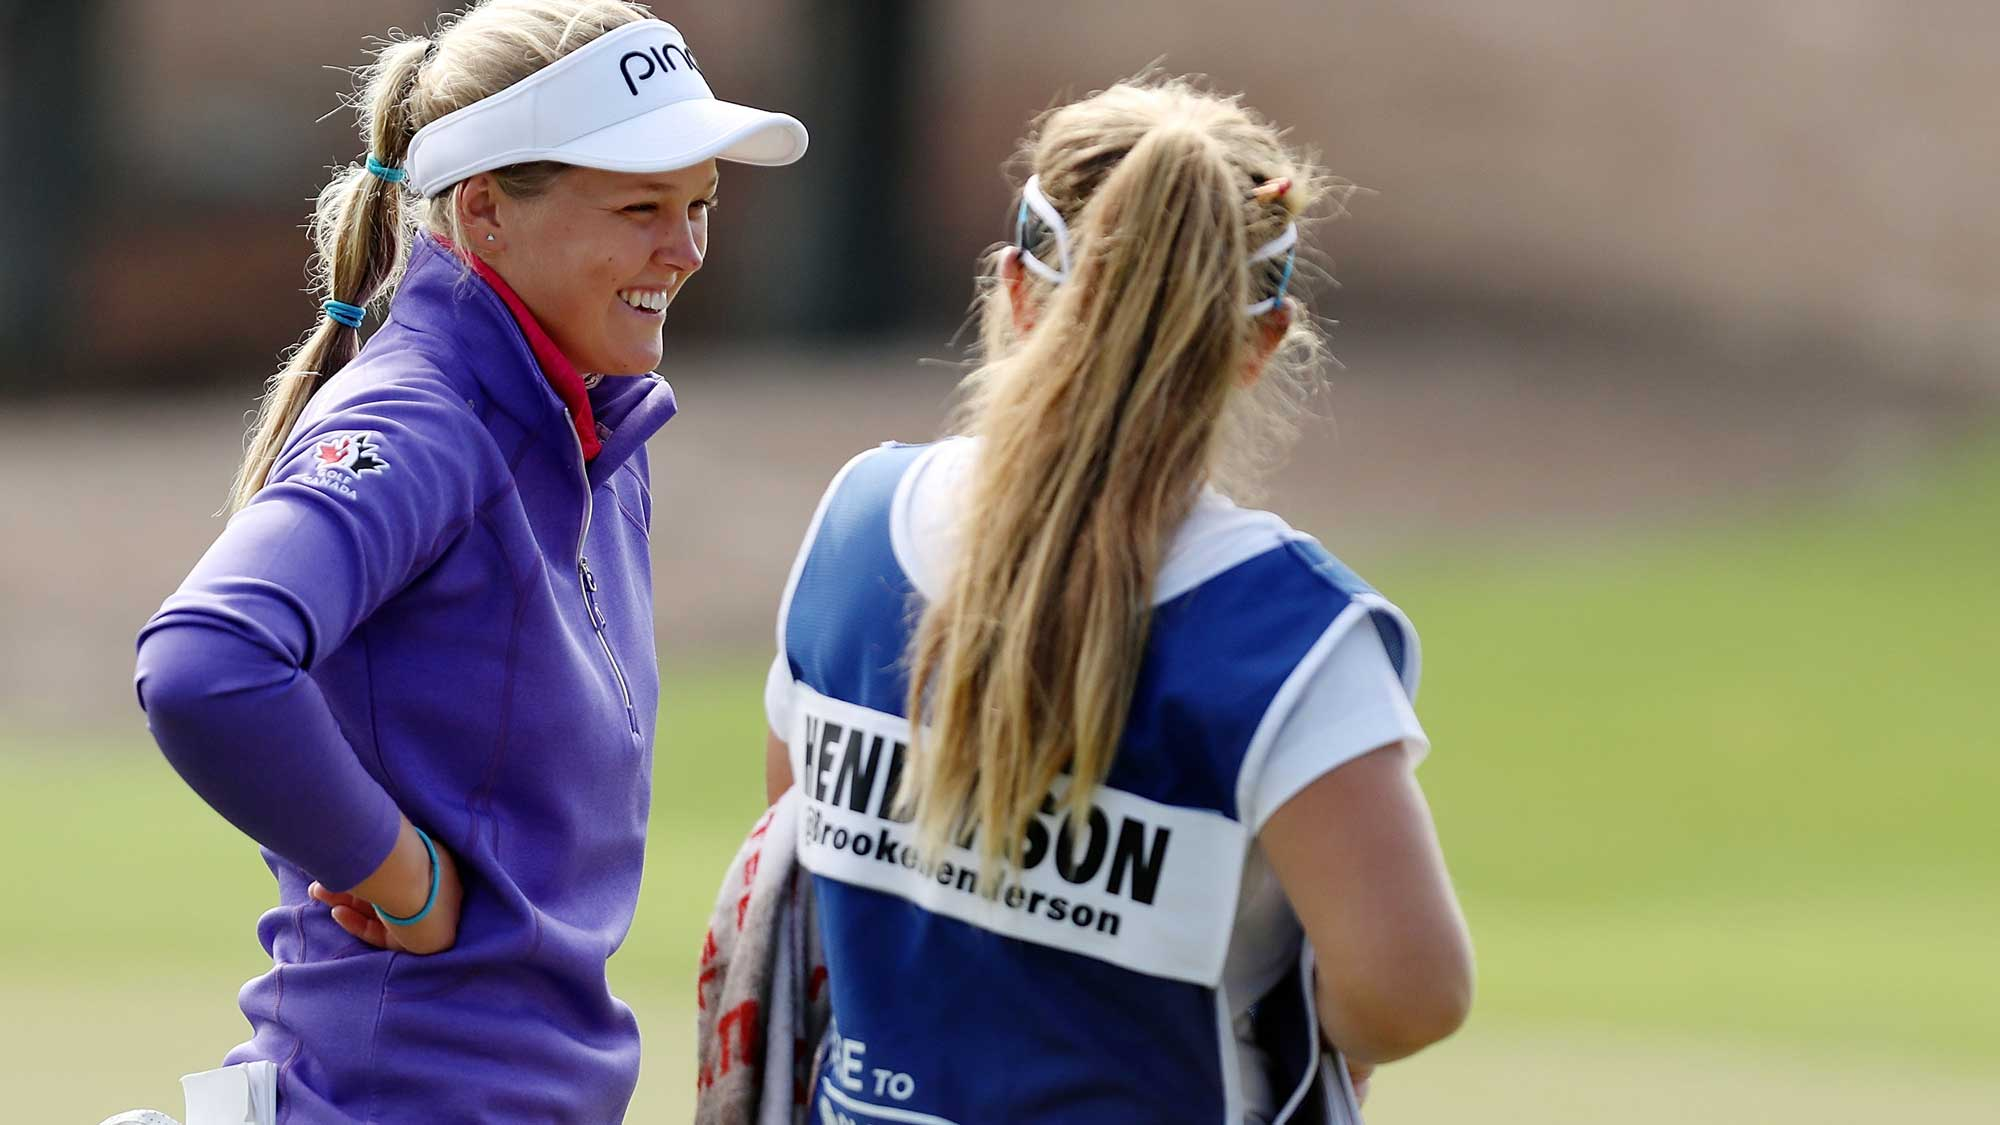 Brooke Henderson of Canada talks with her caddie on the 11th hole during the second round of the CME Group Tour Championship at Tiburon Golf Club